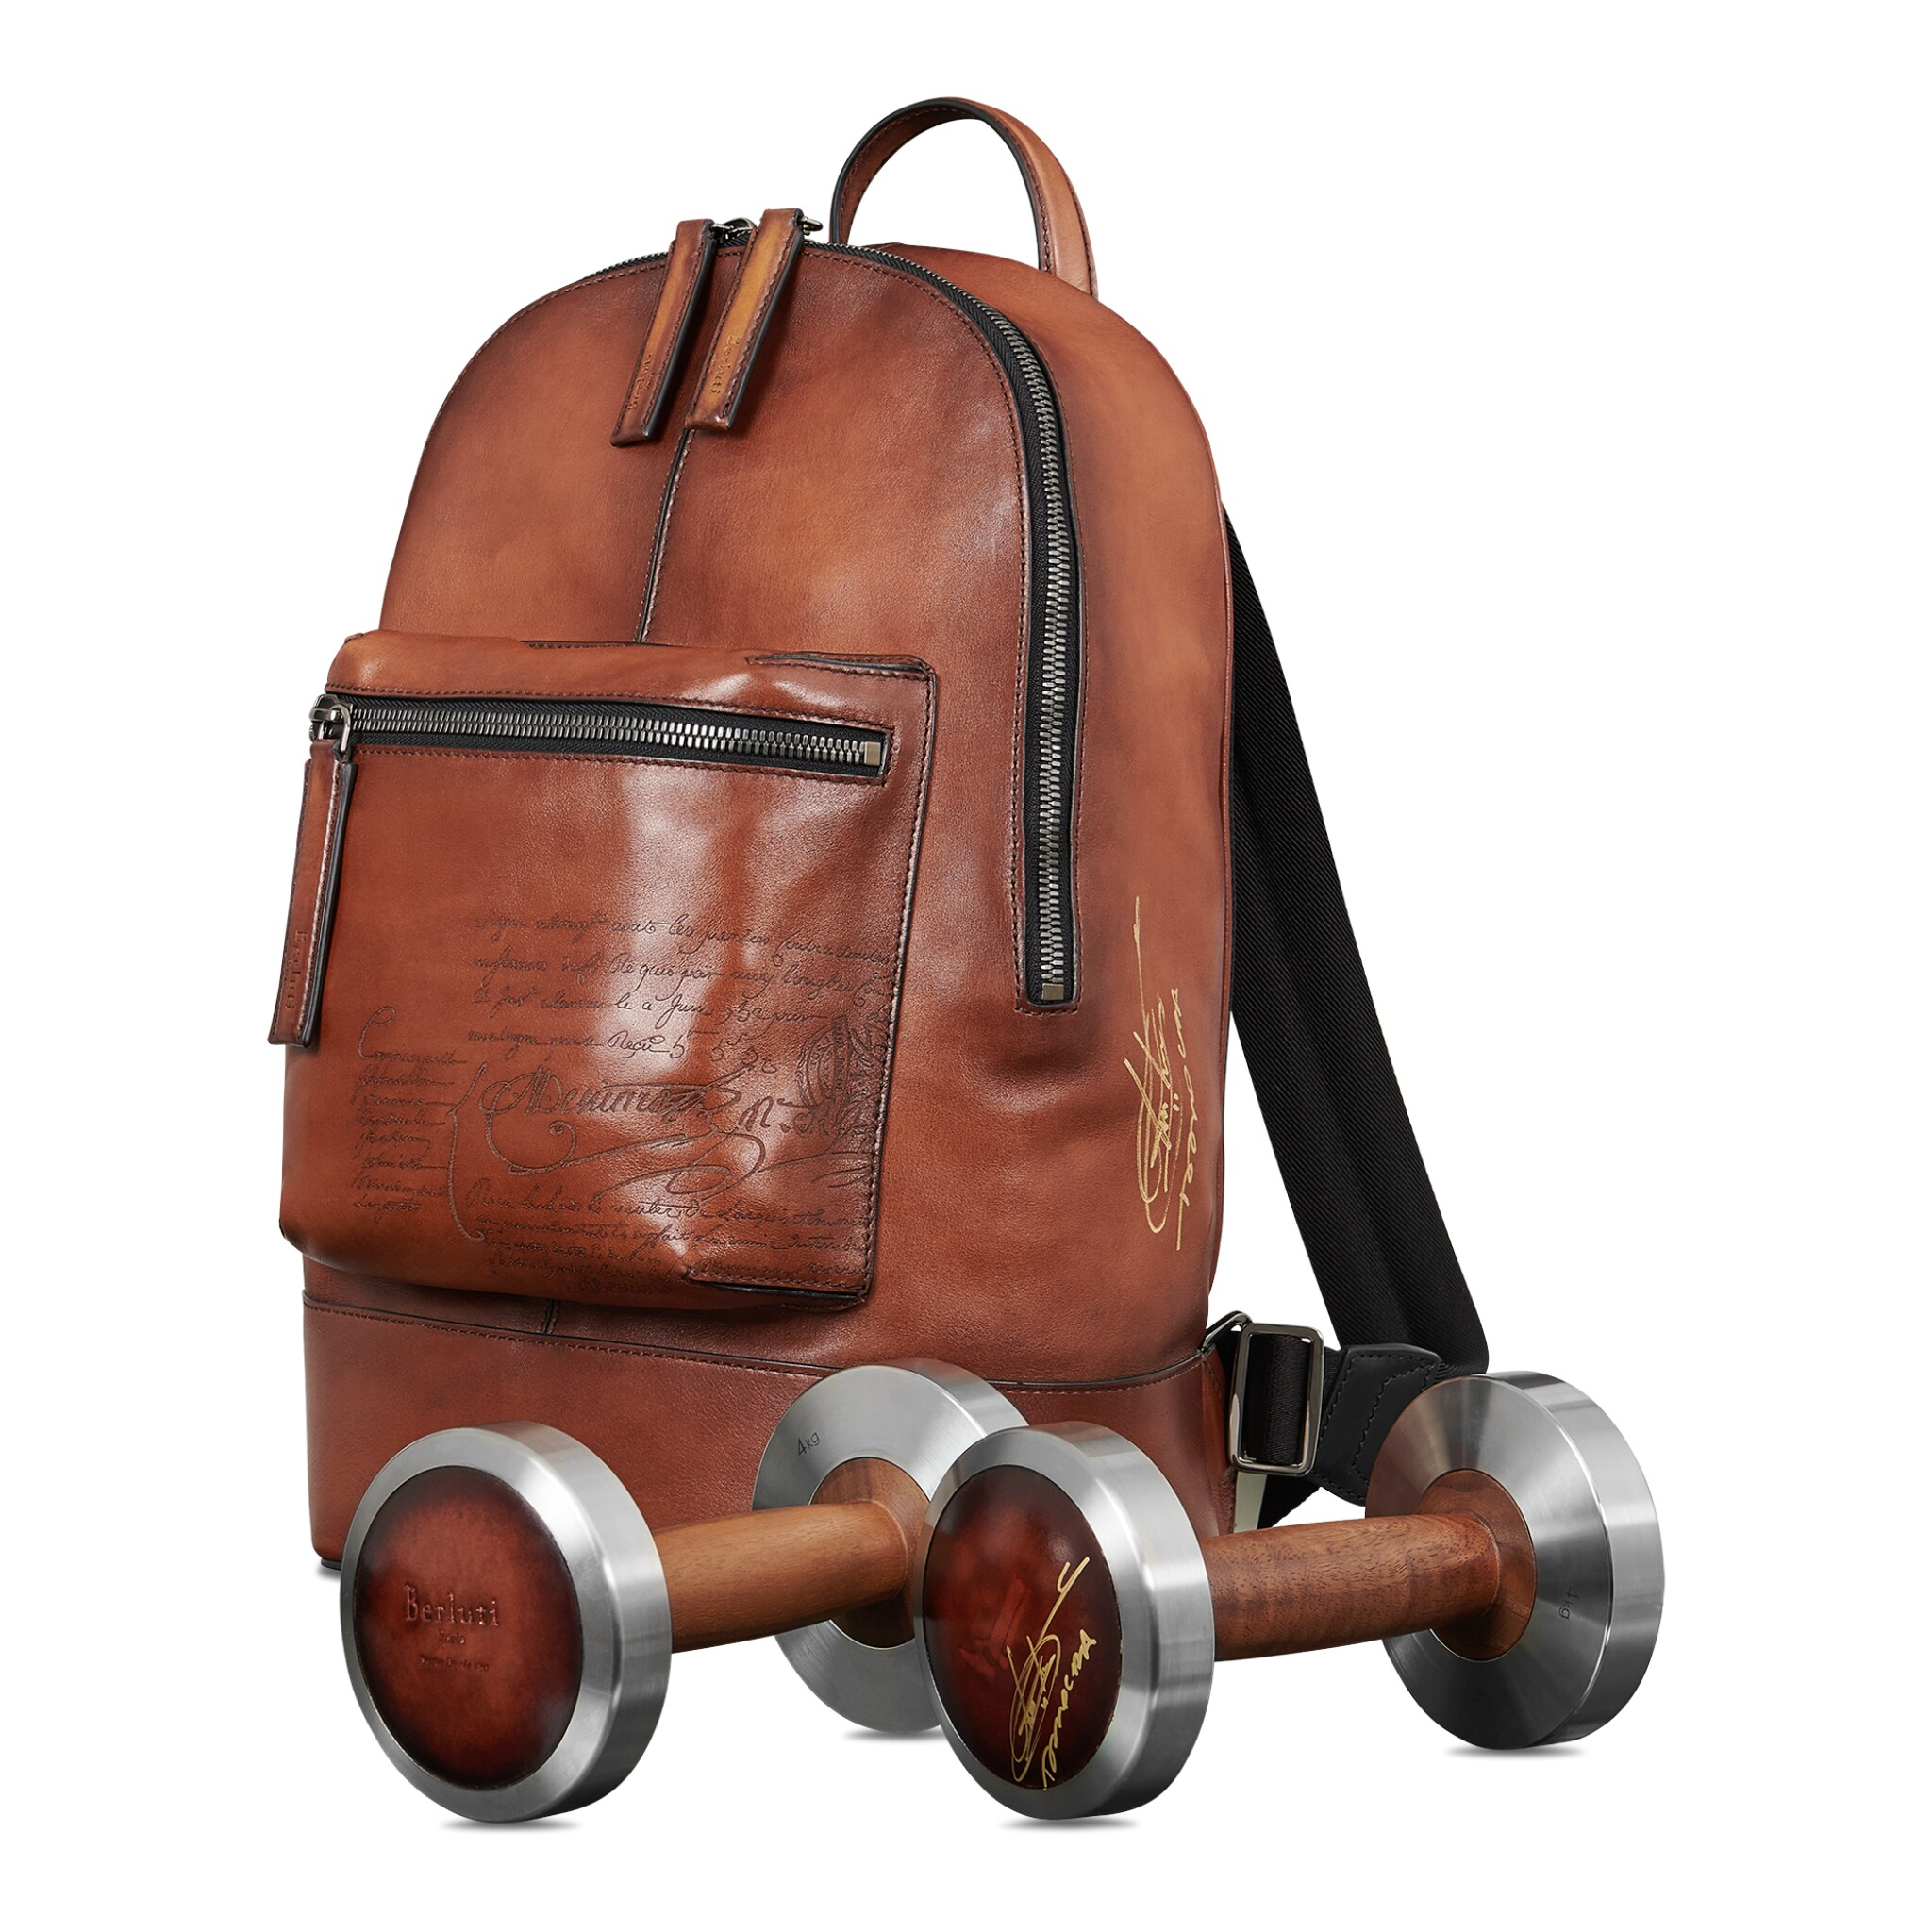 View full screen - View 1 of Lot 14. Berluti | Dumbbells and Backpack Volume Pm (Paires d'Halteres et Sac à Dos Volume Pm ) [2 Items / Articles].